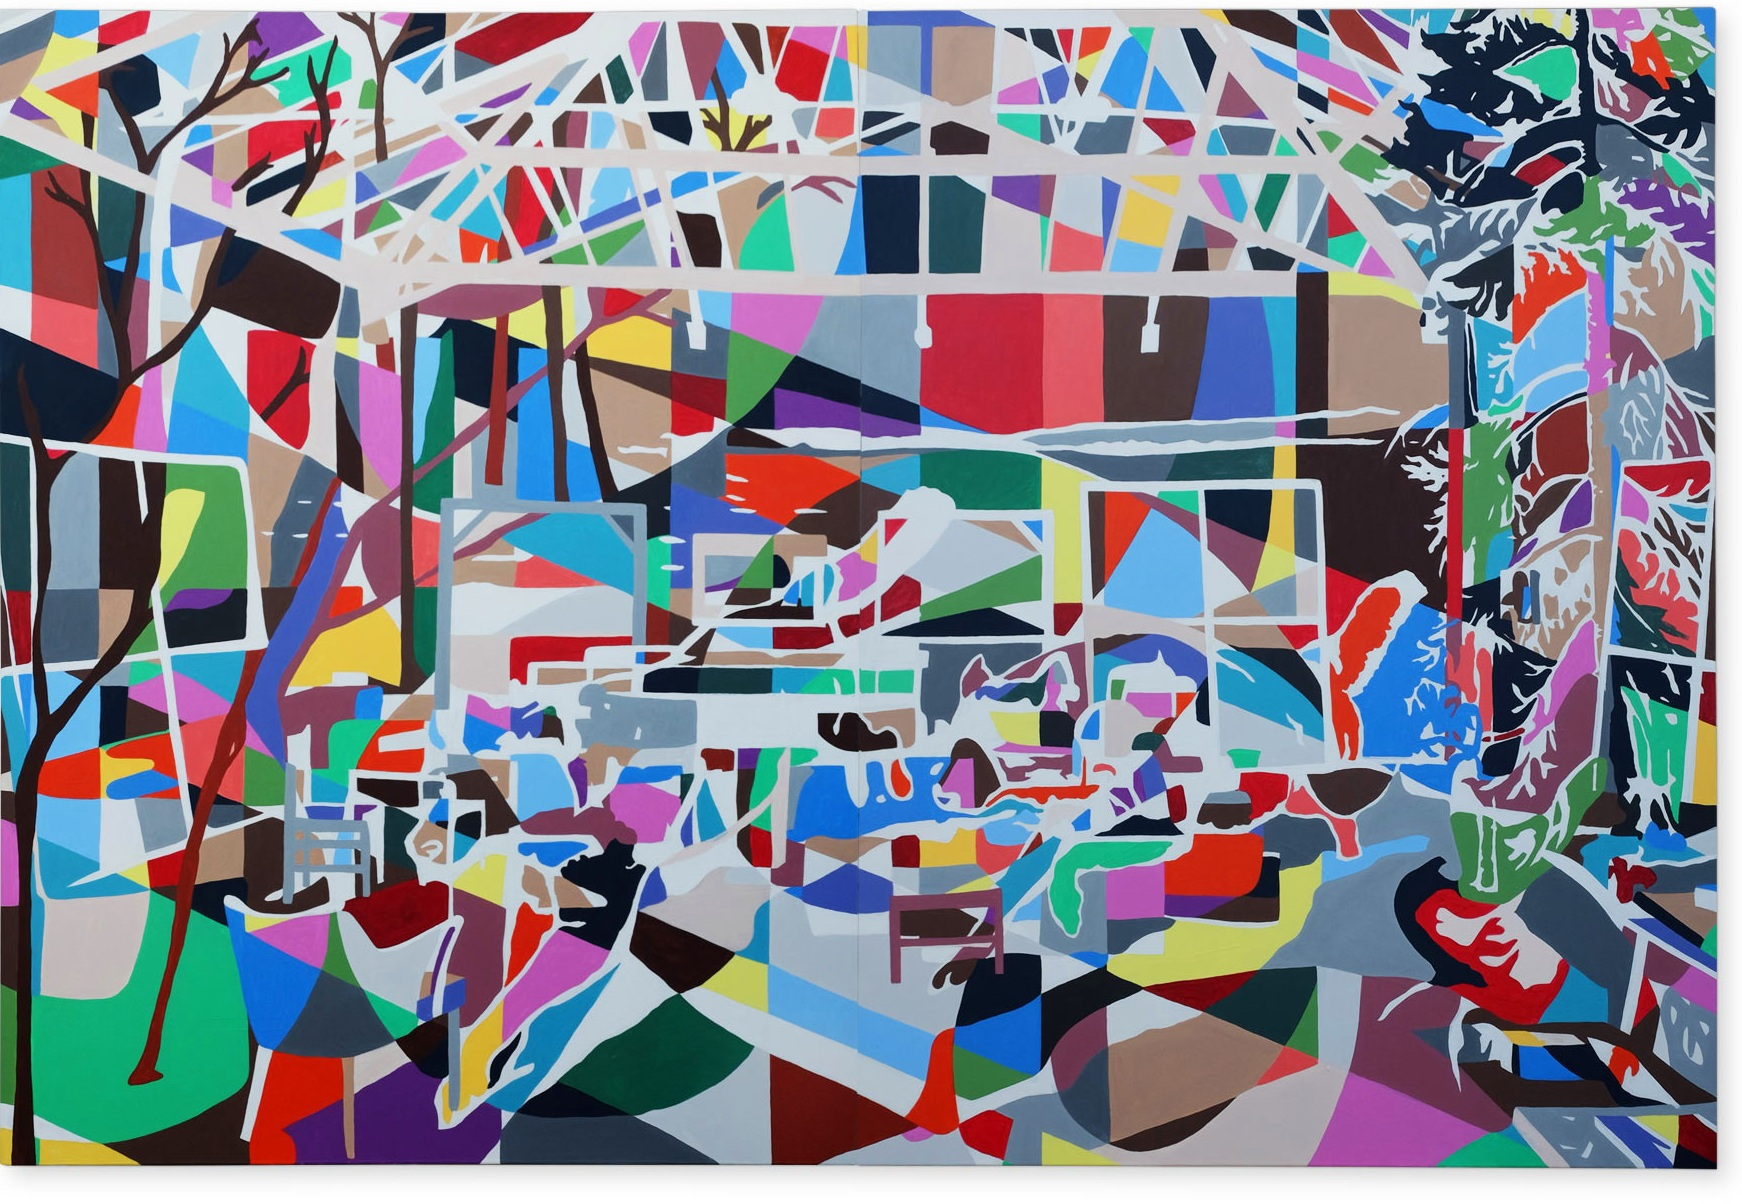 All Tomorrows Parties , 2018   Acrylic on canvas, 1520 x 2000mm  Finalist - Wallace Art Awards